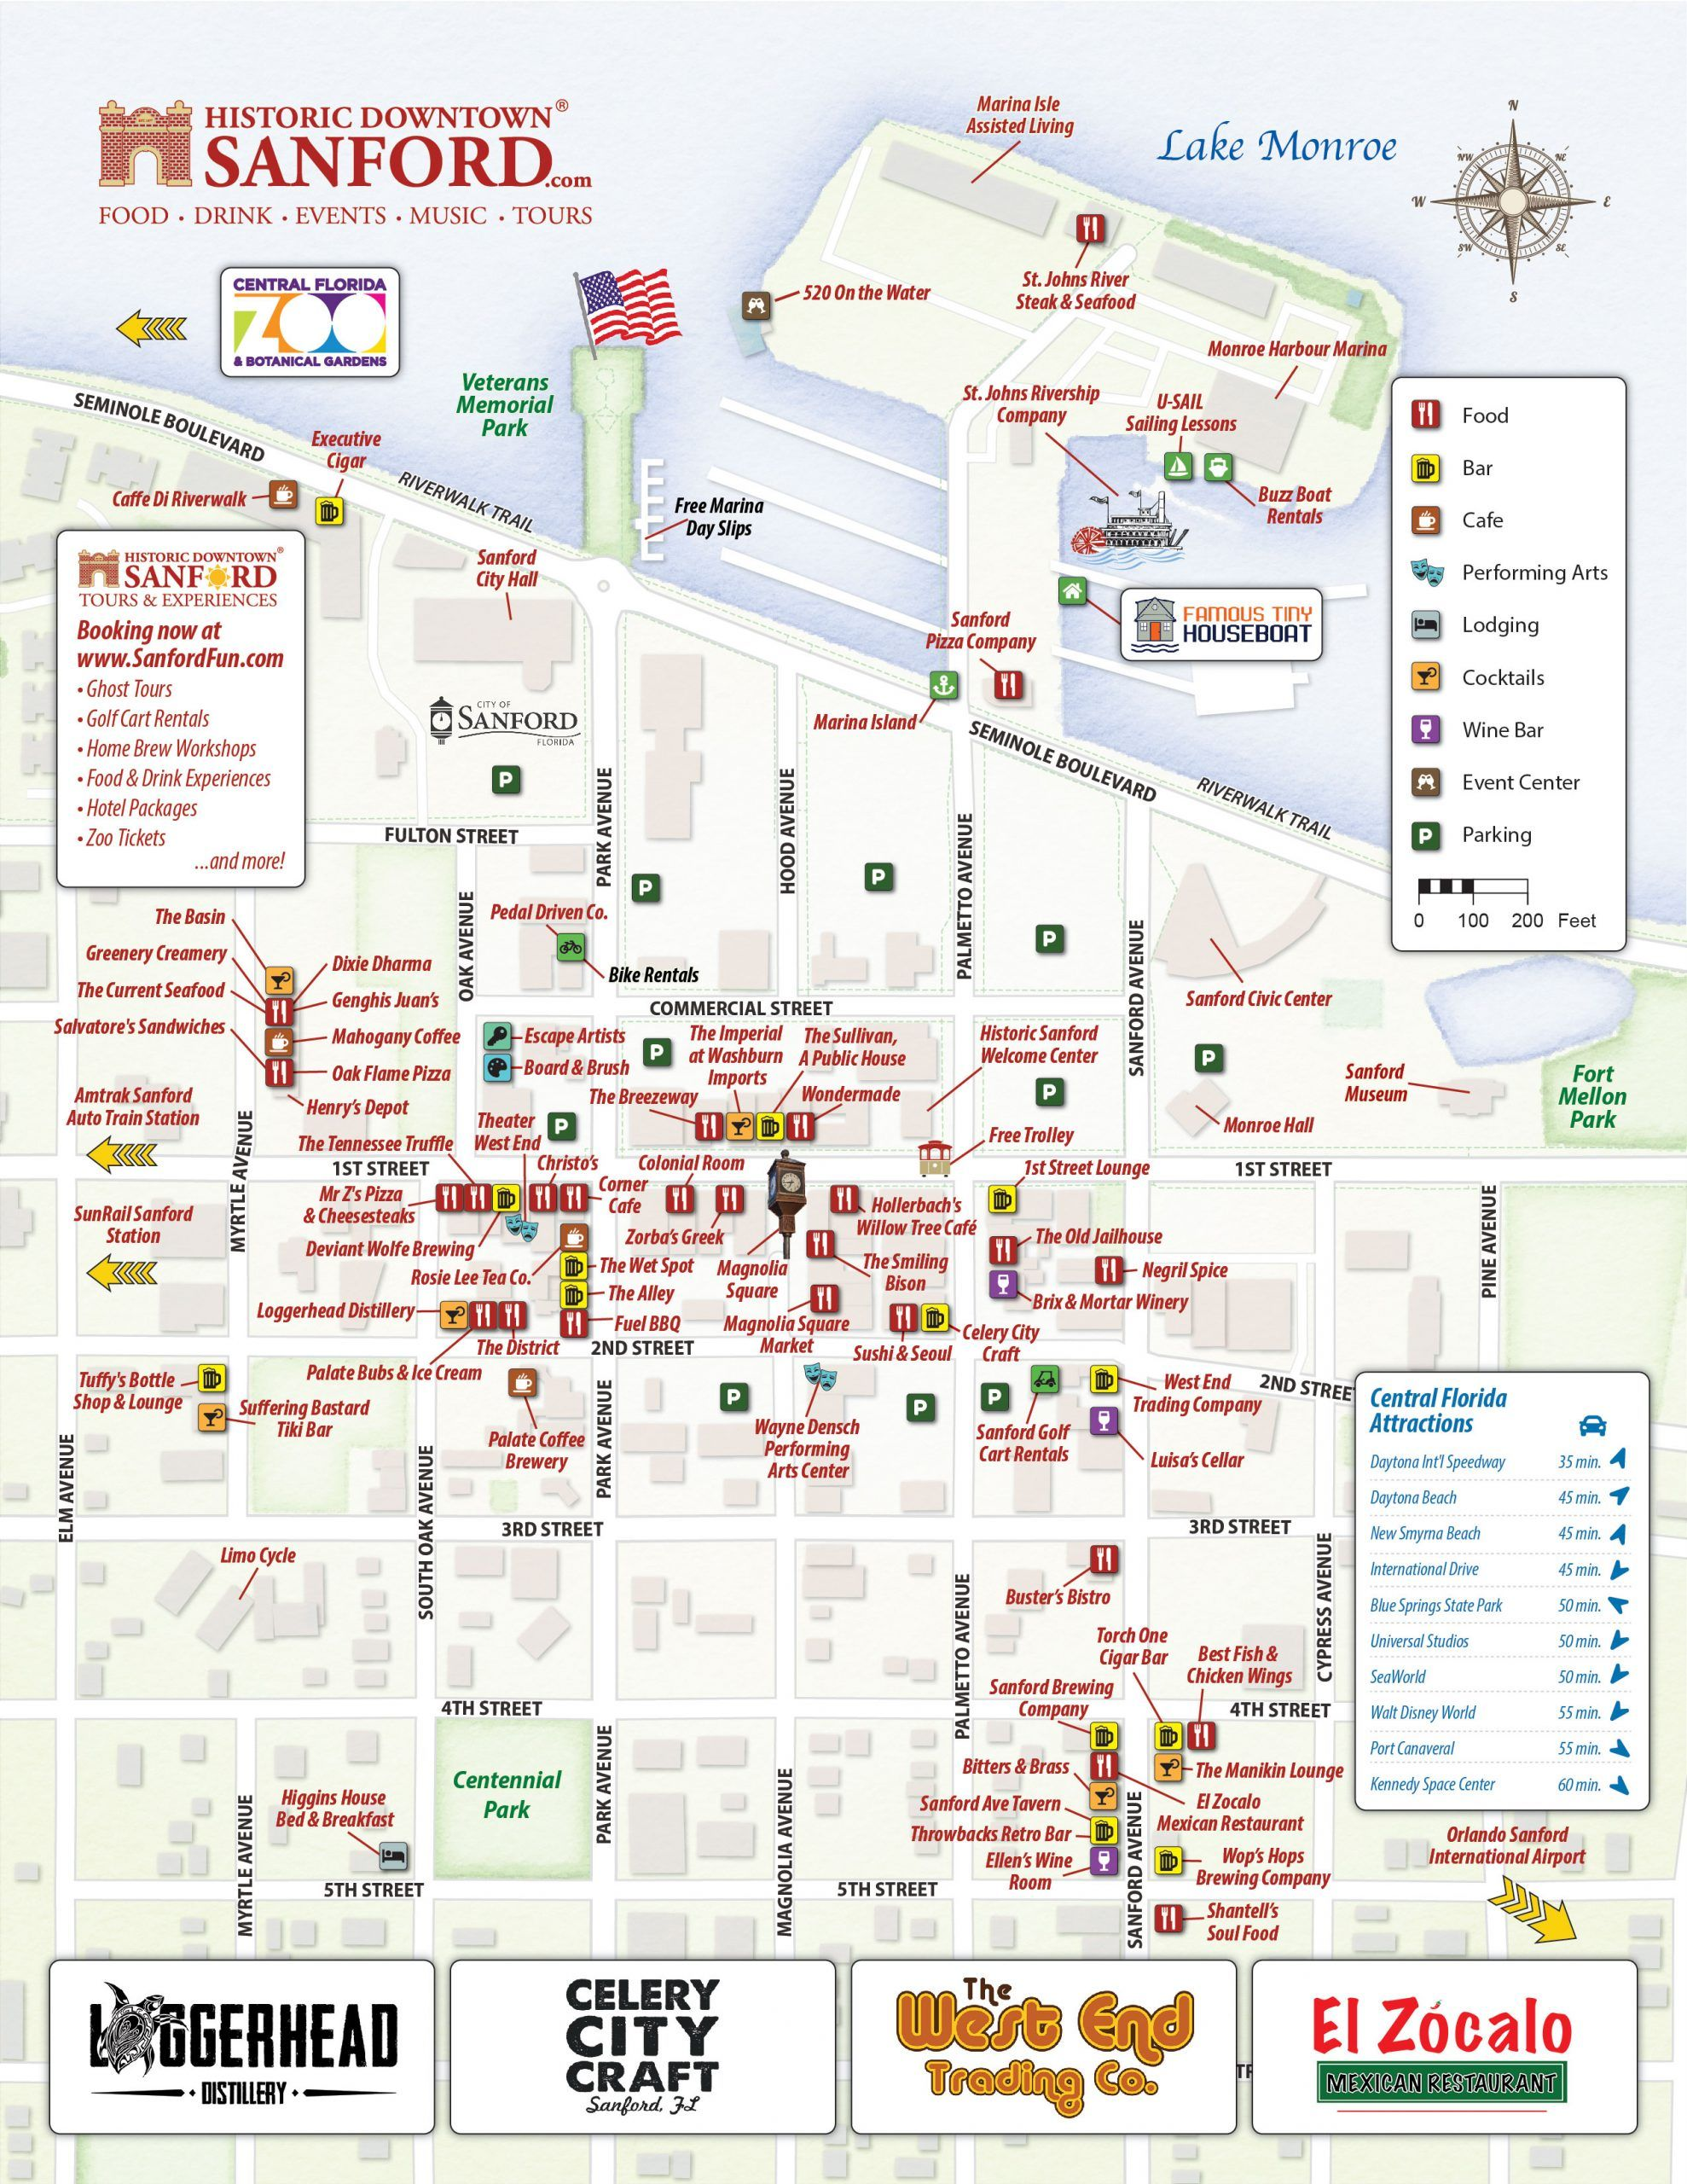 Parking Map of Sanford, FL